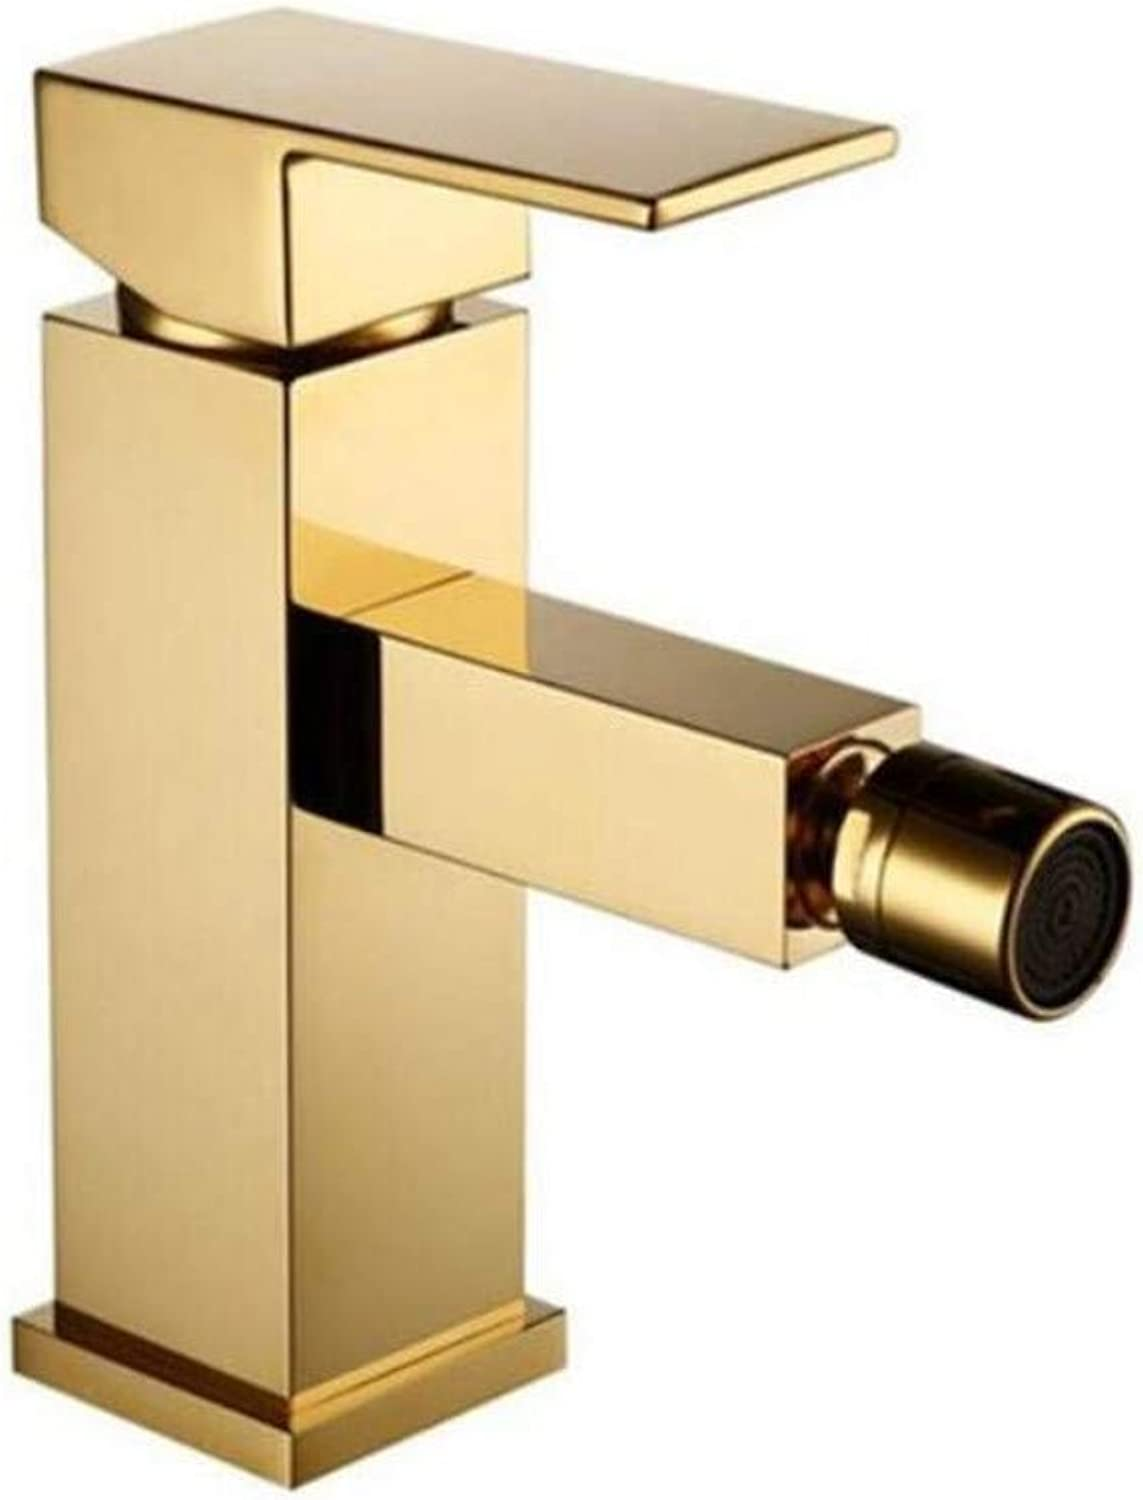 Brass Chrome Hot and Cold Water Bathroom Faucet Brass Square Style gold Finish Bidet Single Lever Mixer Water Tap